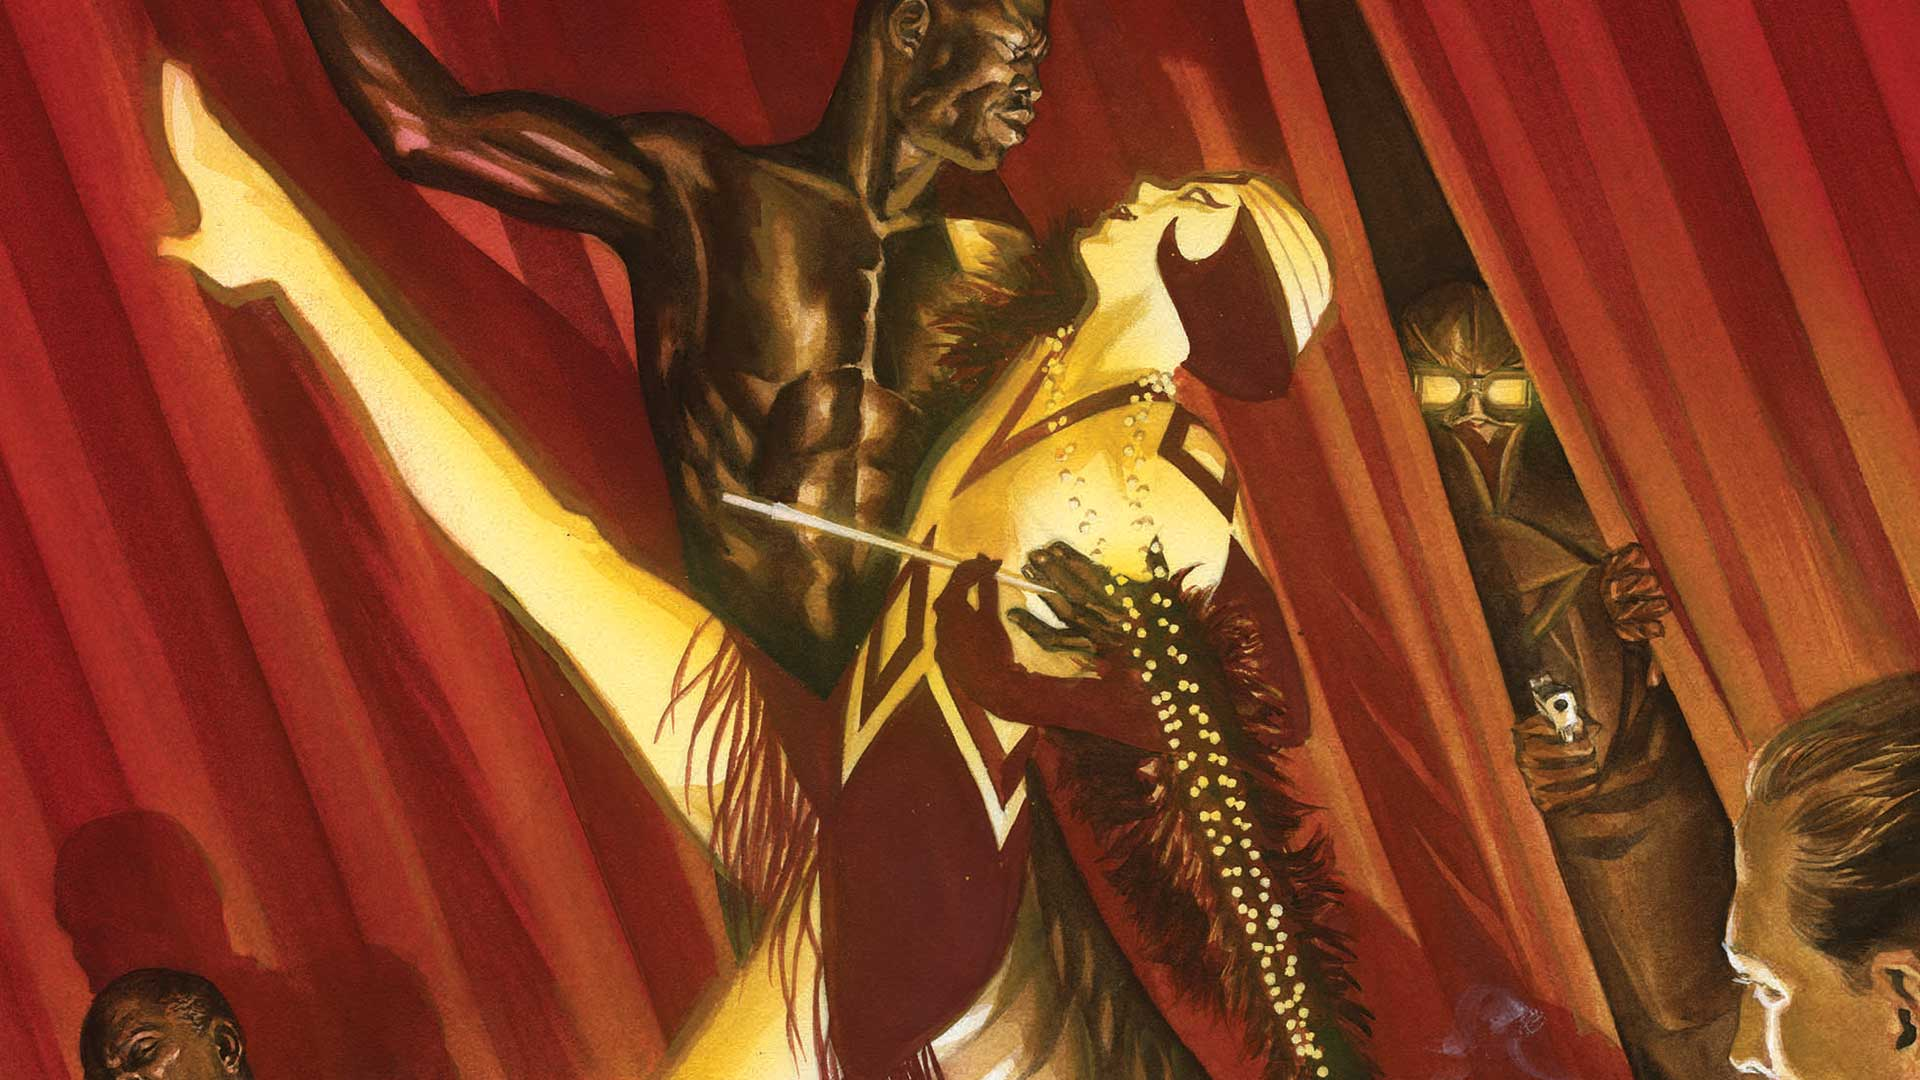 Astro City #38 Review